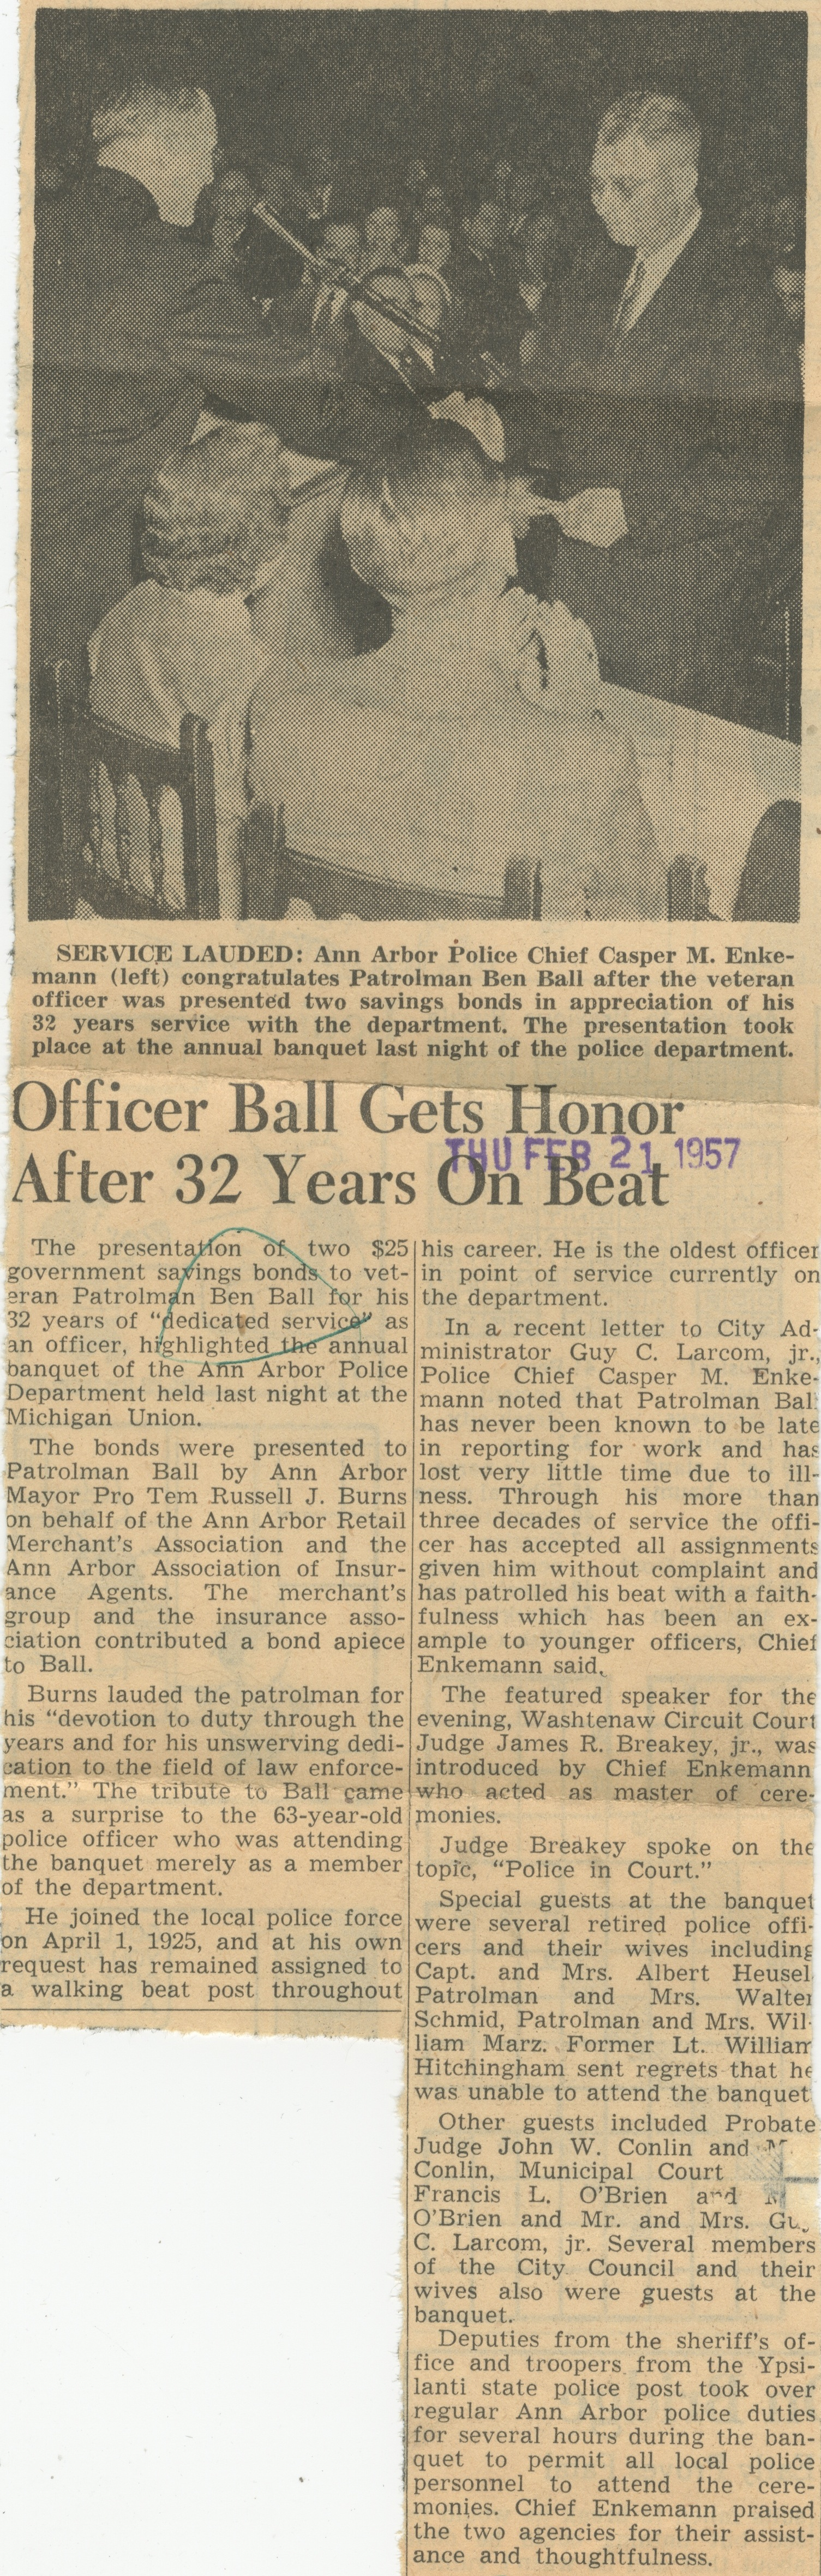 Officer Ball Gets Honor After 32 Years On Beat image